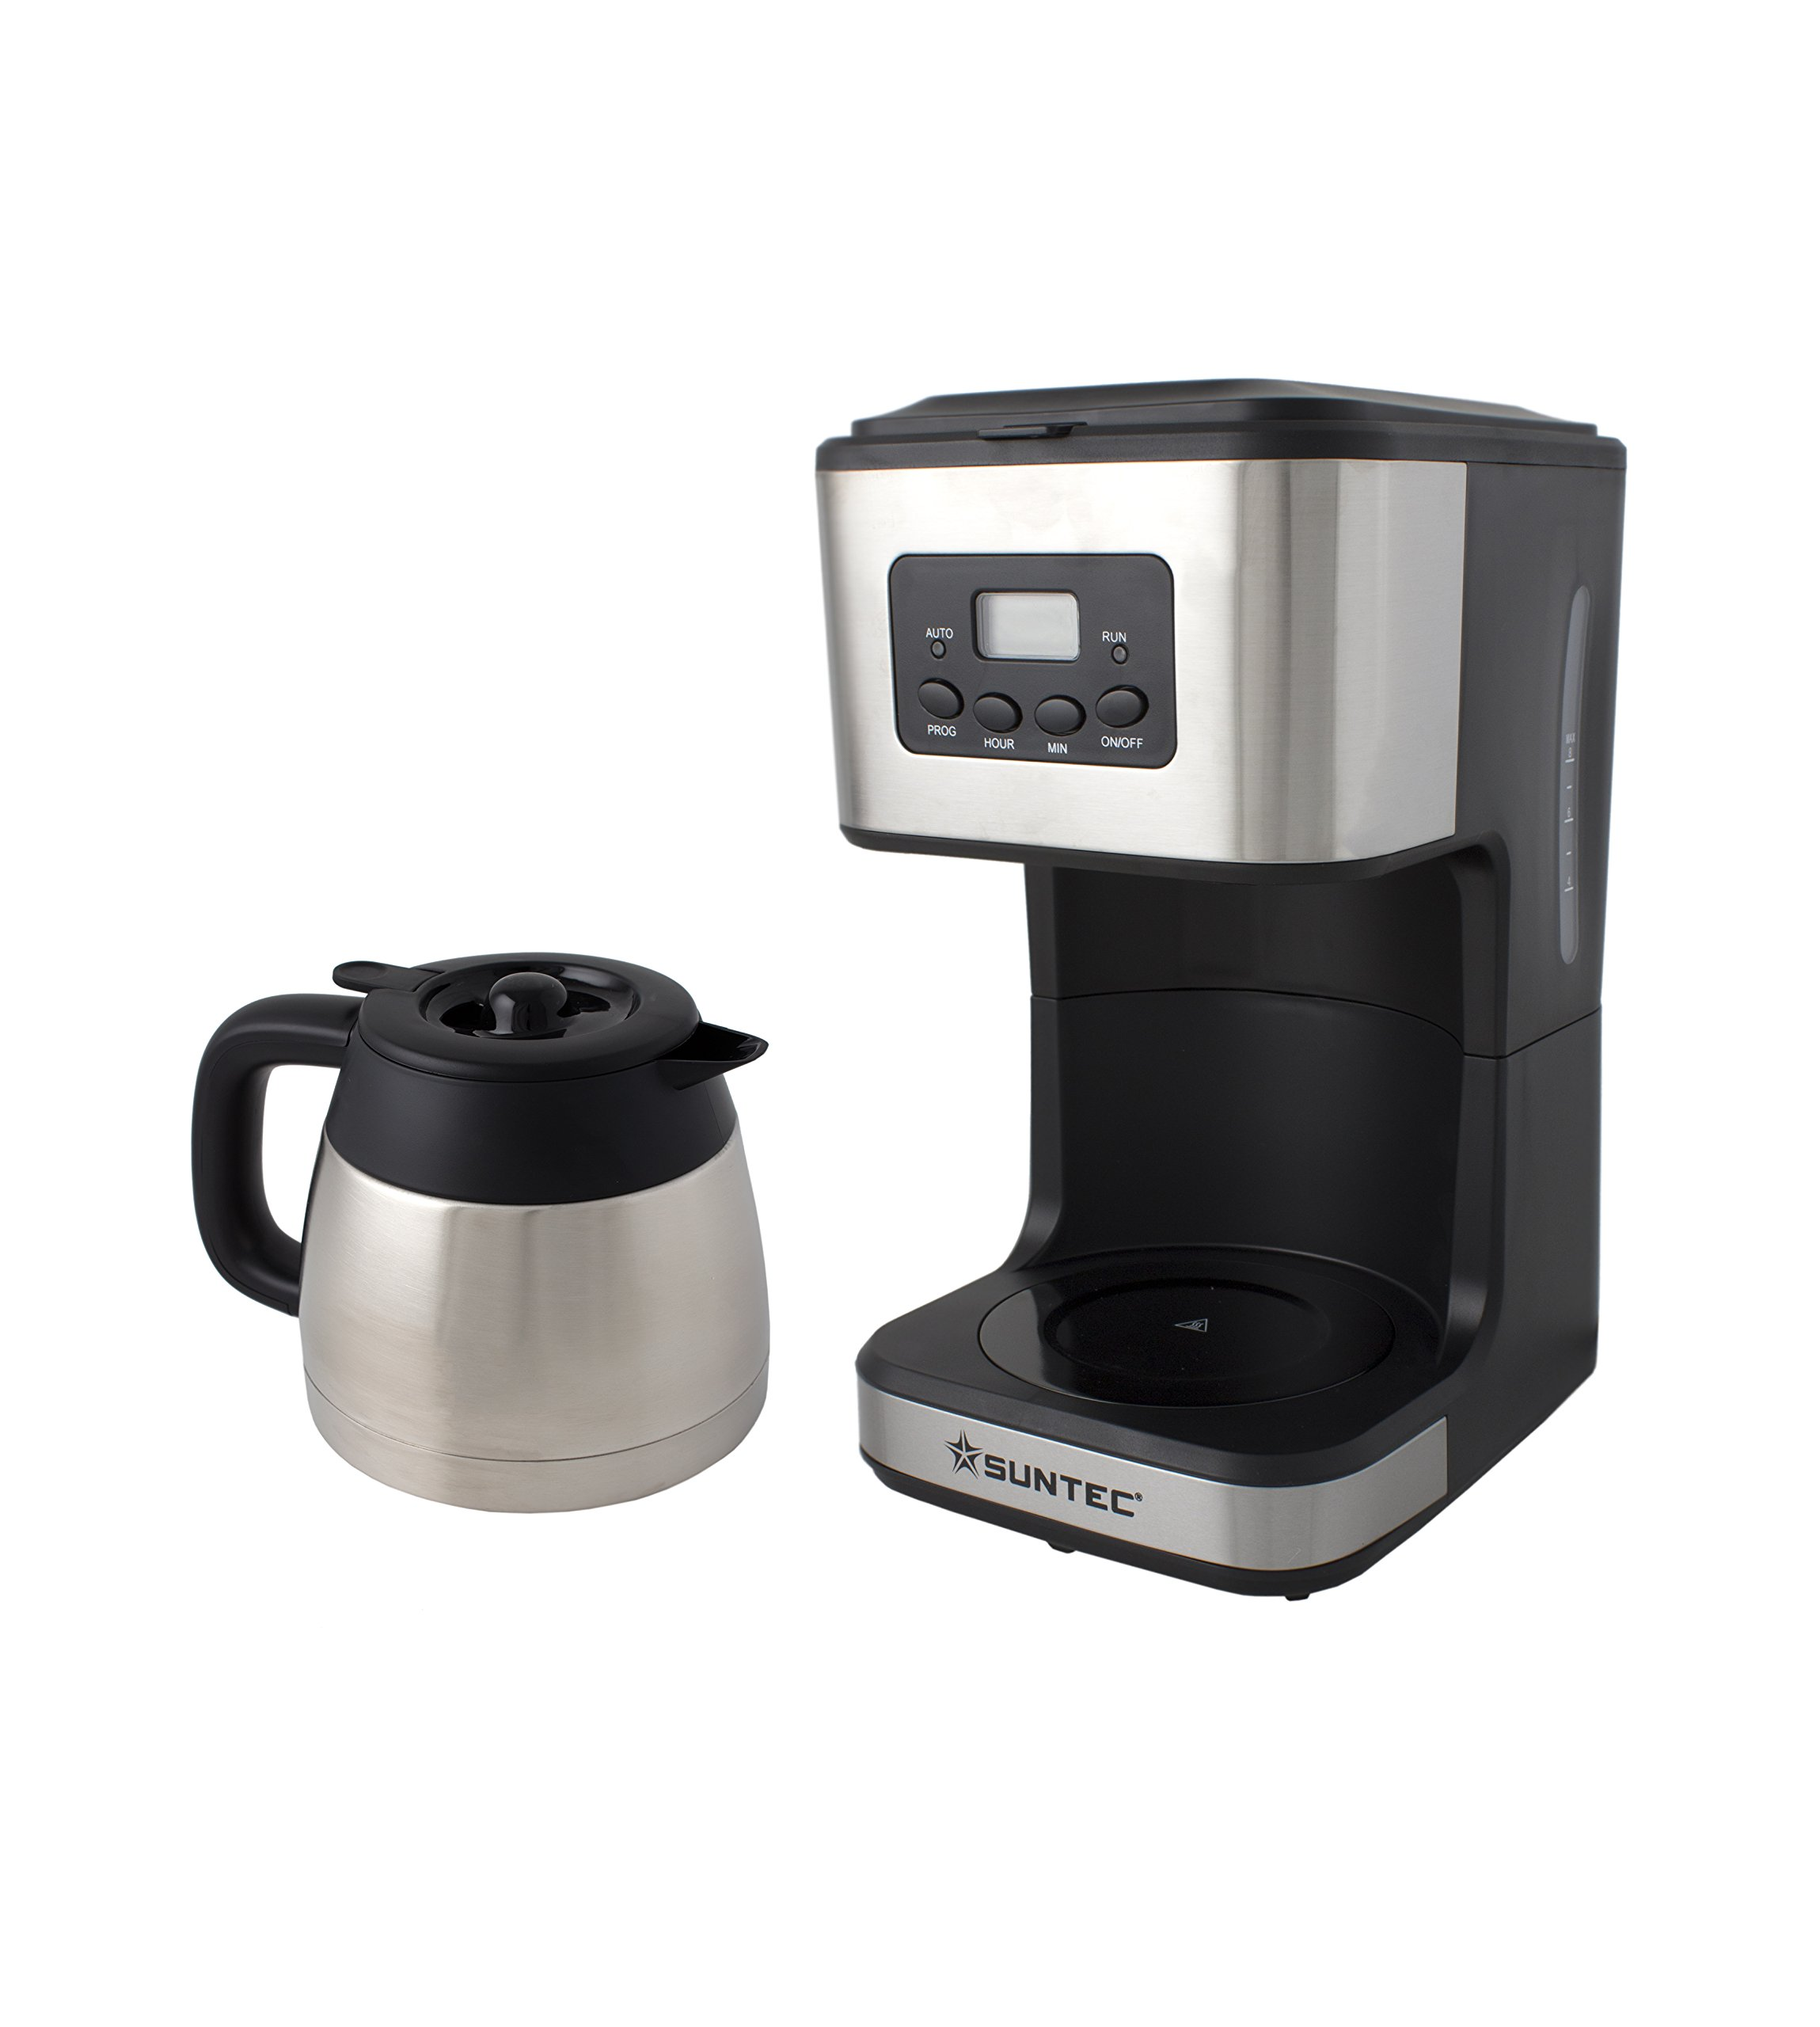 SUNTEC-Filter-Kaffeemaschine-KAM-8267-digital-Mit-Timer-Programmierung-Anti-Tropf-Feature-Edelstahl-Thermoskanne-1-l-max-900-Watt